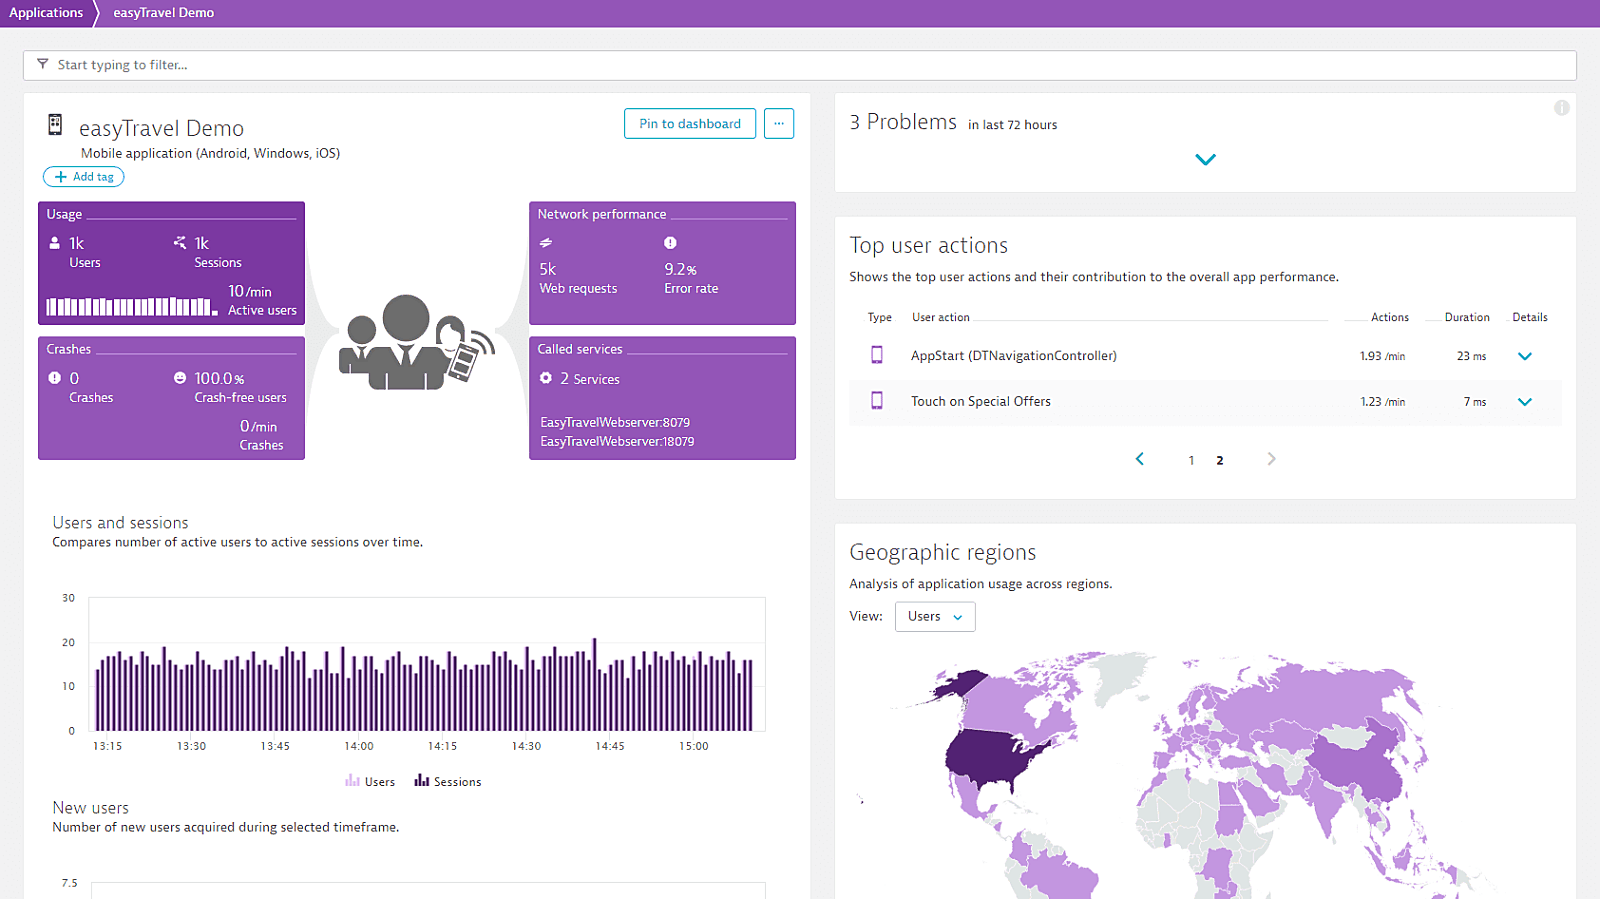 Dashboard overview of performance issues